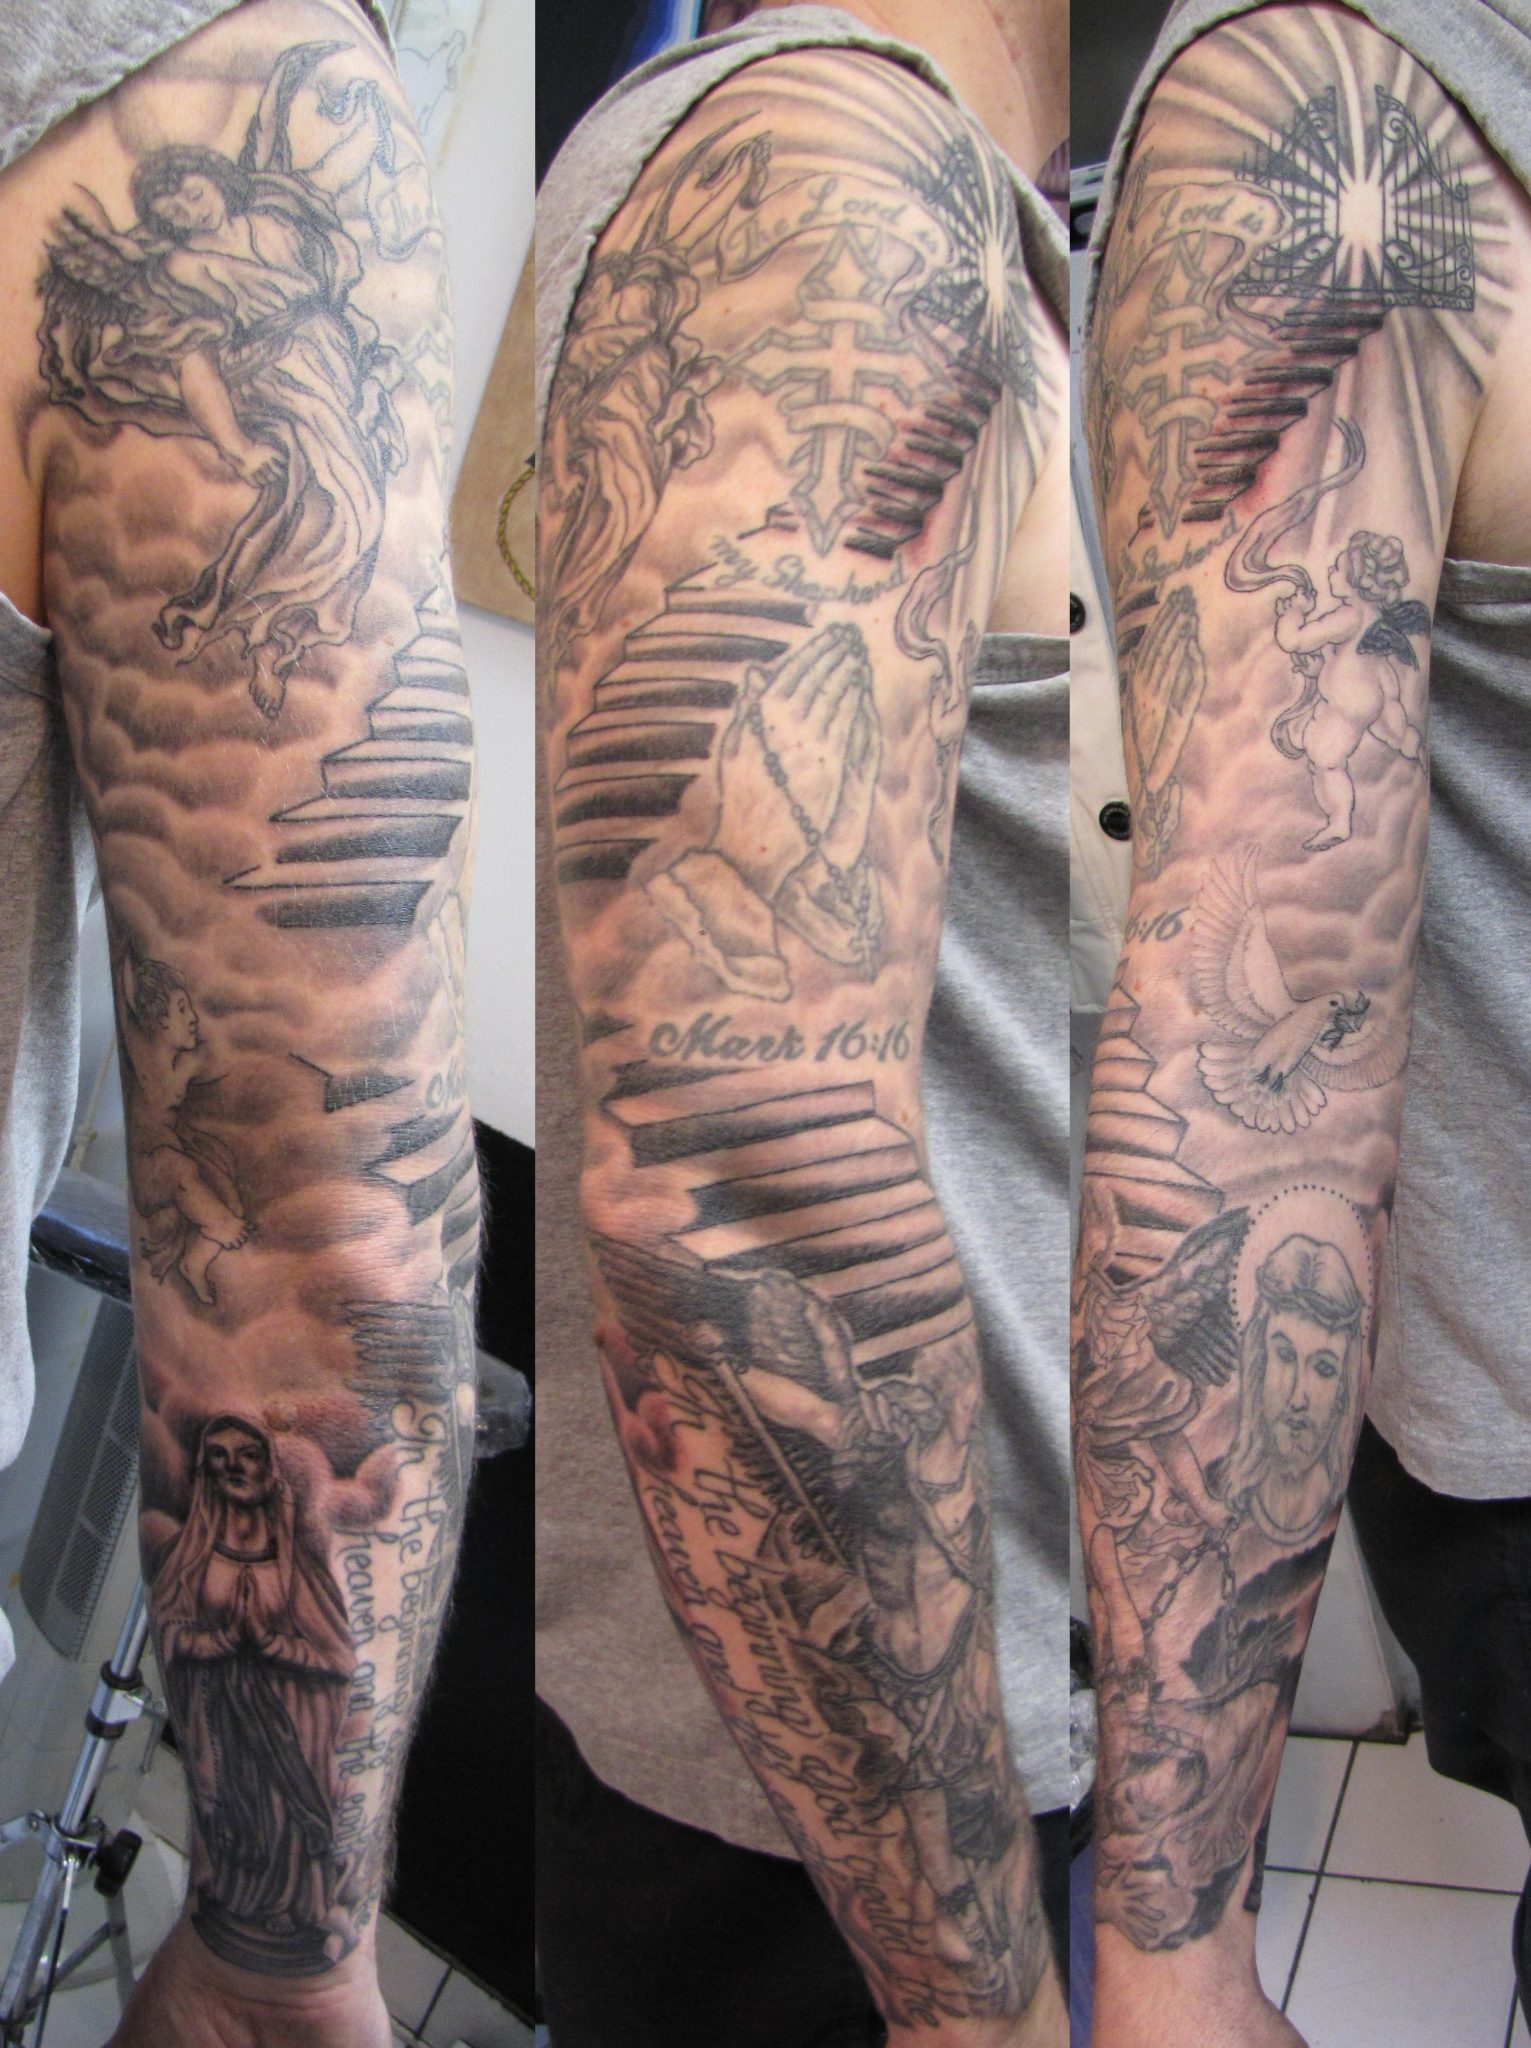 100 best tattoo designs for men in 2015 - Top 100 Tribal Tattoos For Men 2 227x650 100